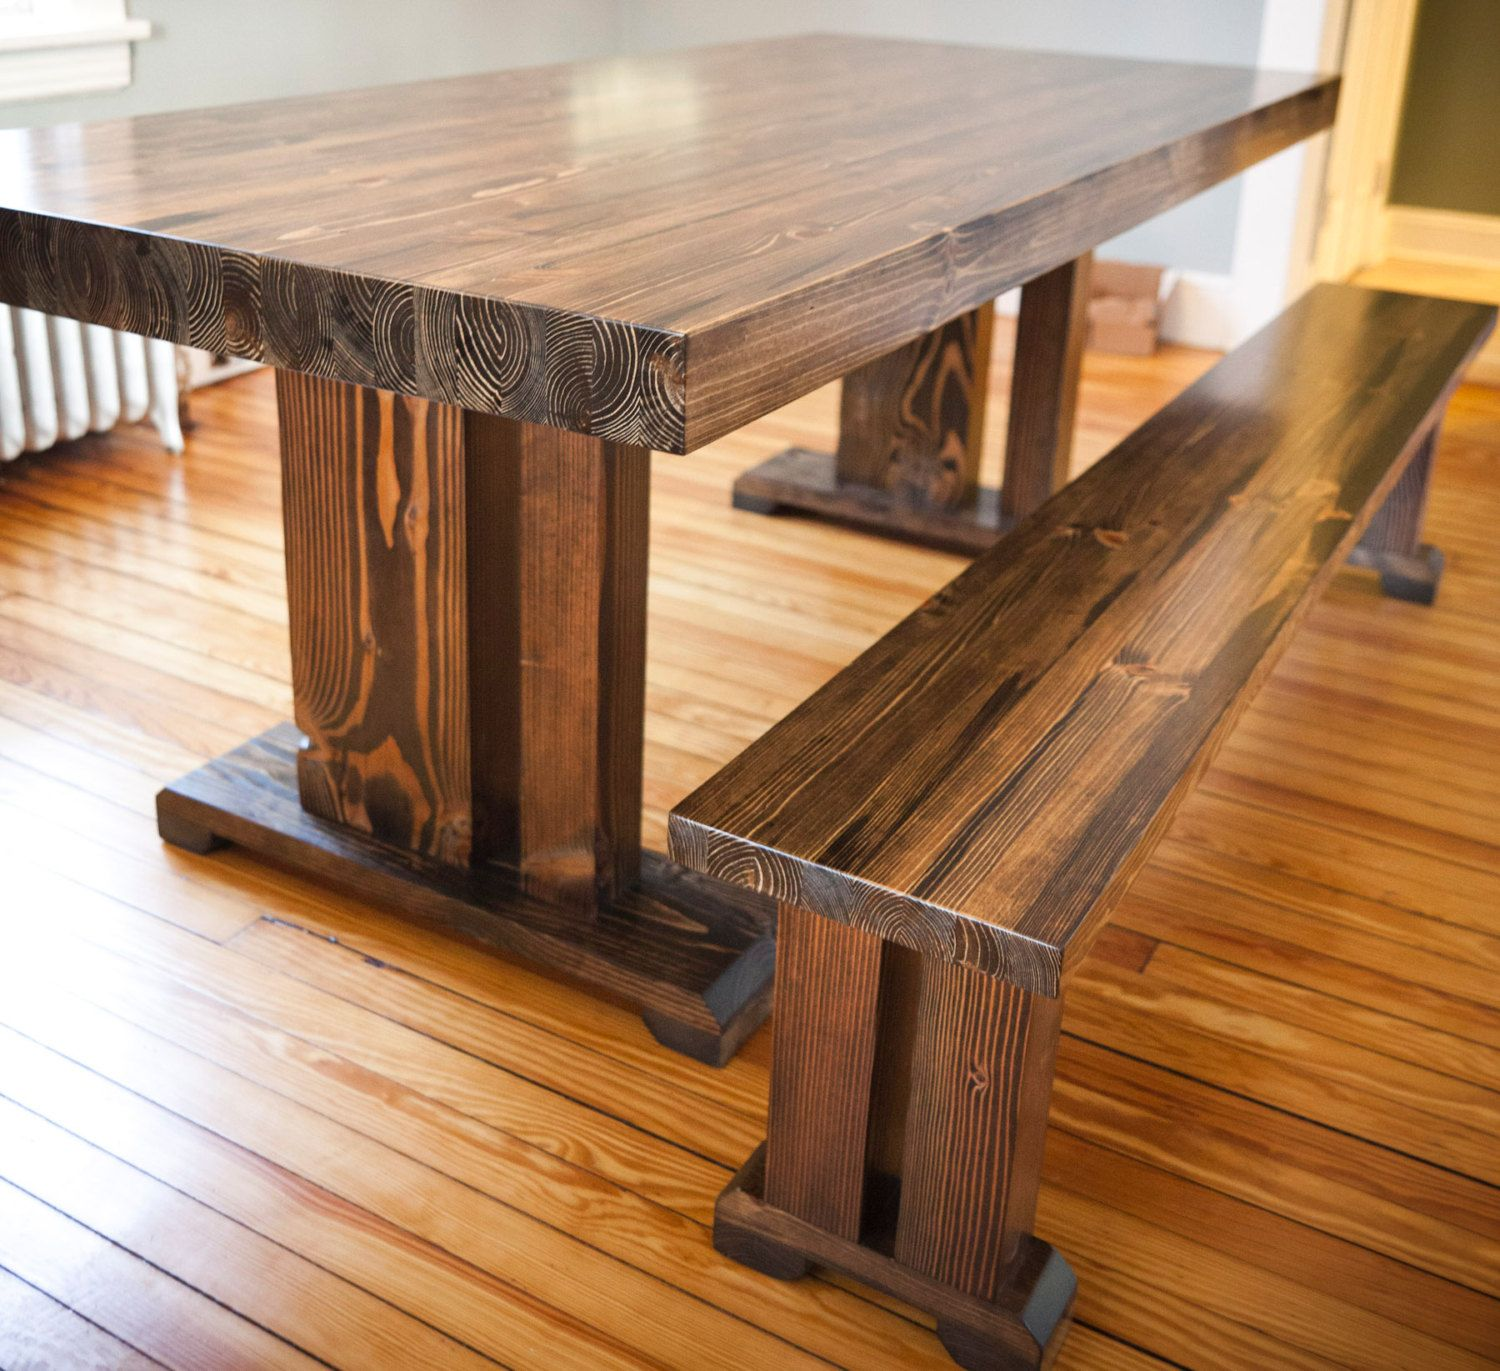 farm style wood dining table with well-made solid wood butcher ...farm style wood dining table with well-made solid wood butcher block table  style table